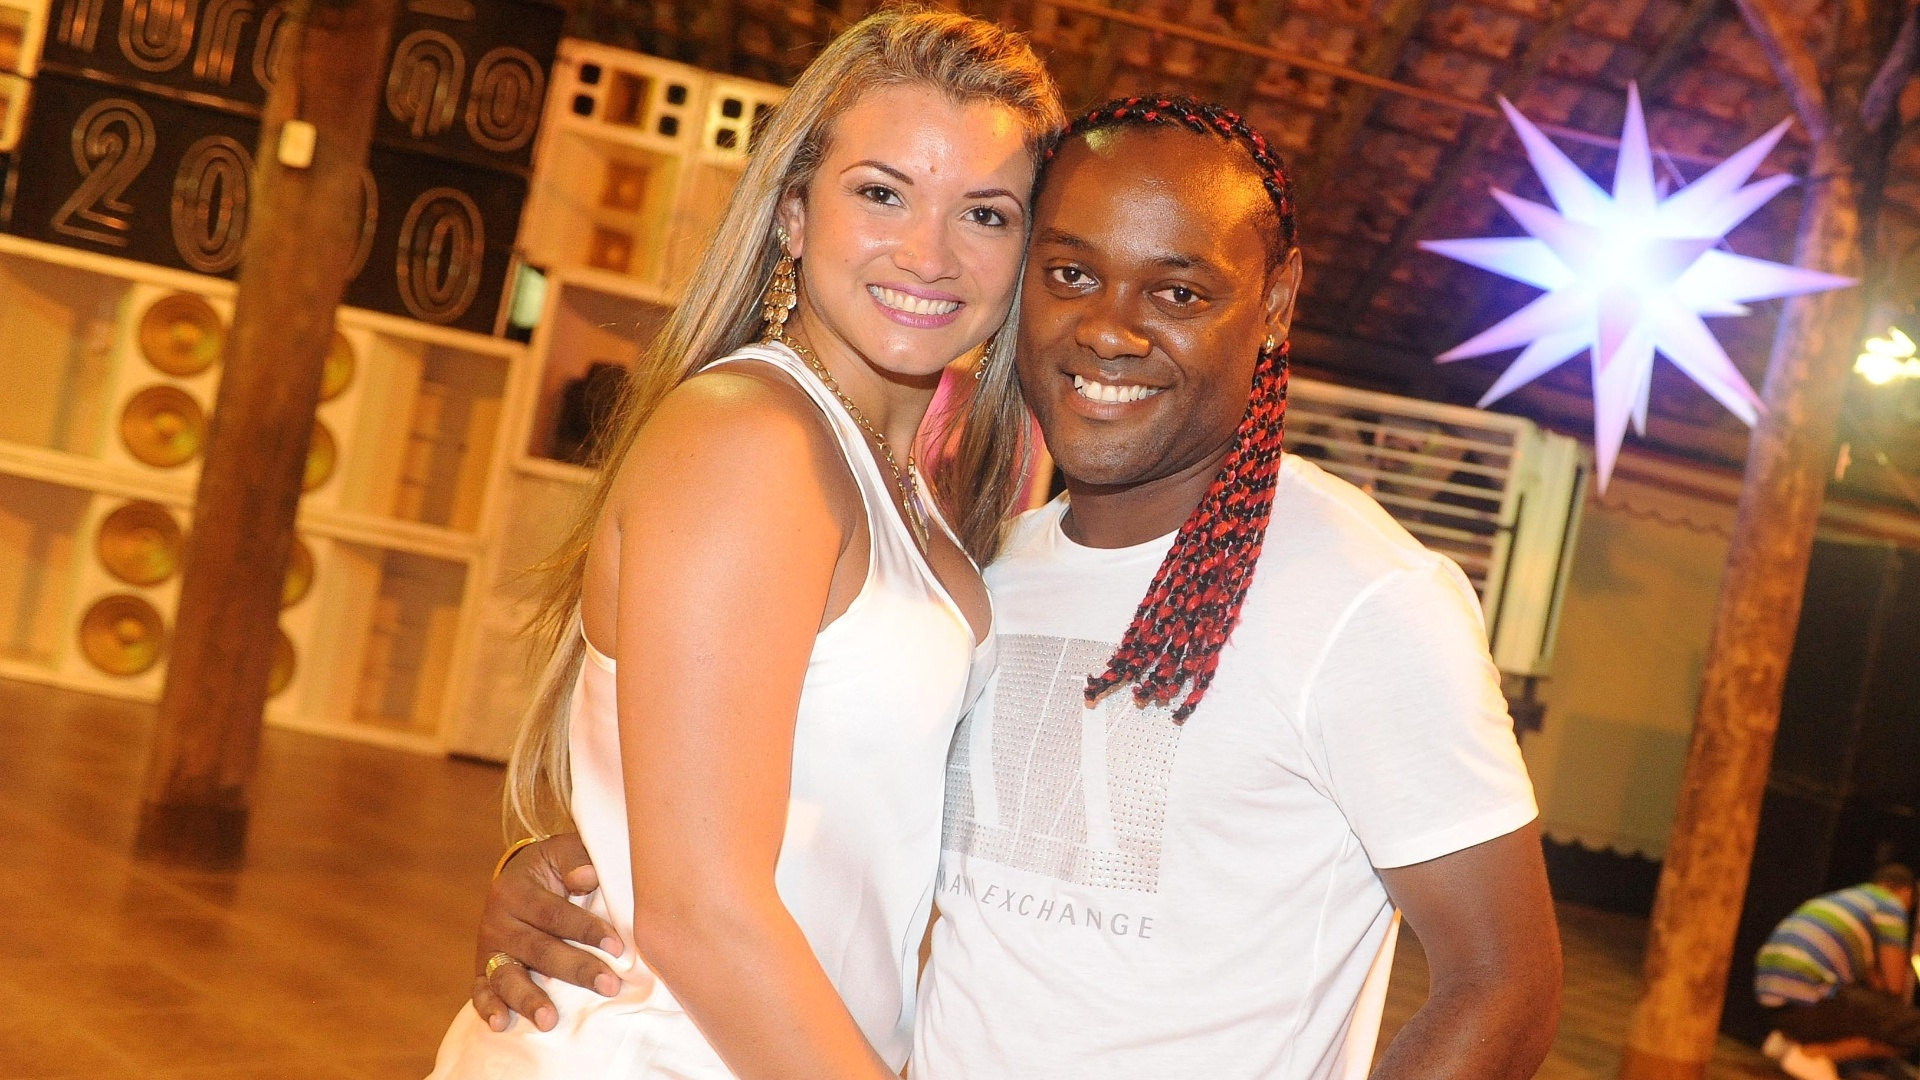 Lucilene Pires e Vagner Love comemoraram juntos a virada de ano